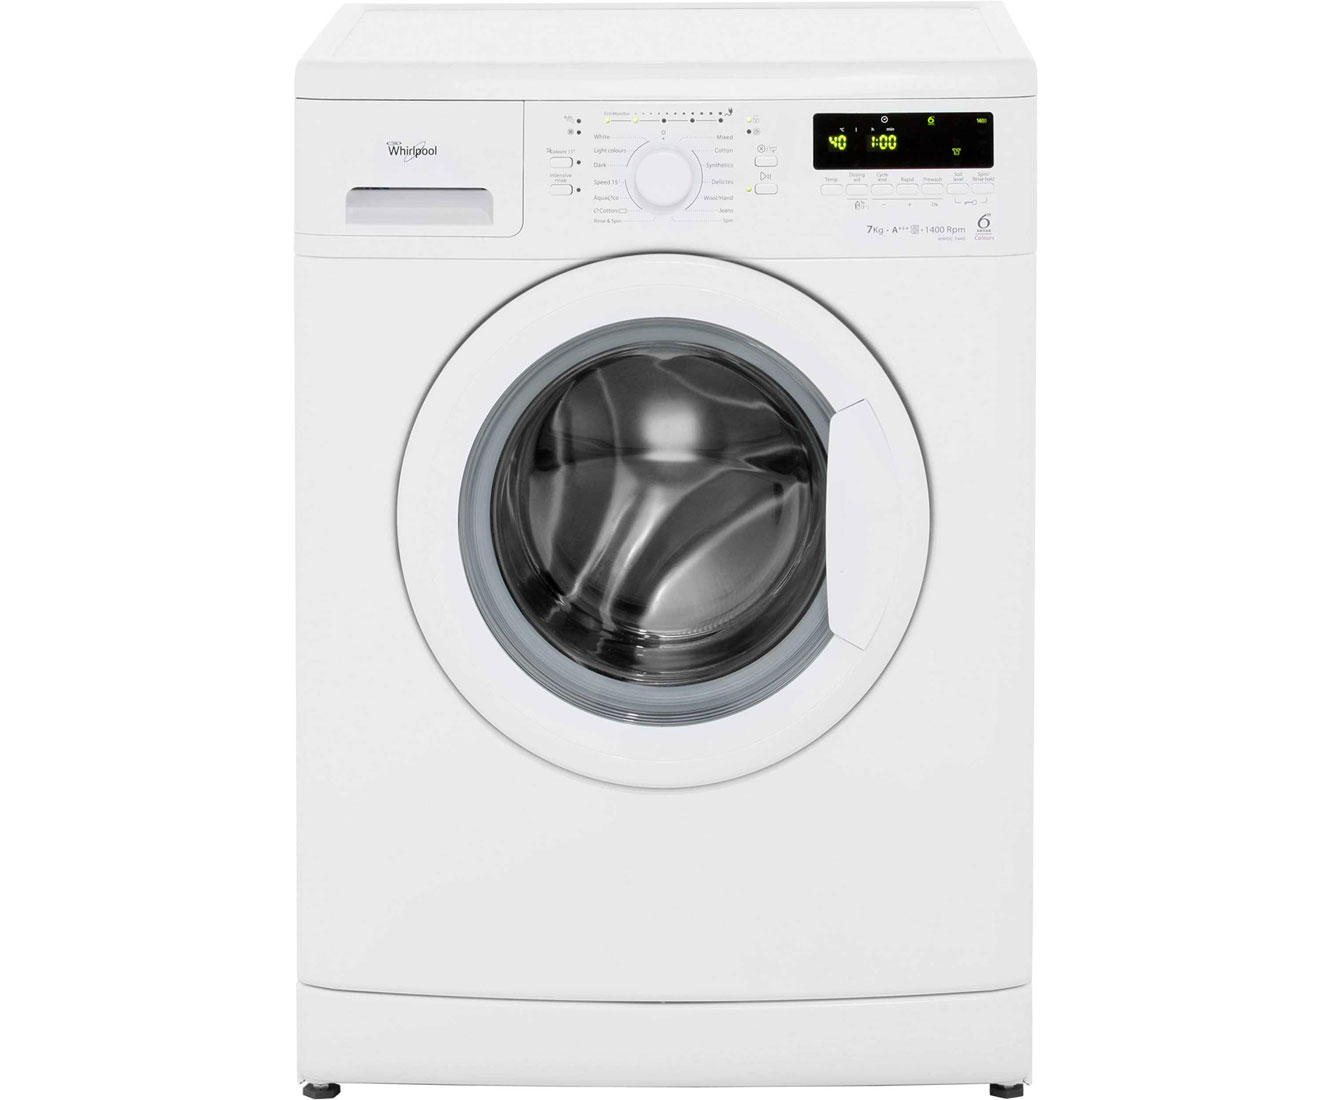 Whirlpool 6th Sense WWDC7440 7Kg Washing Machine with 1400 rpm - White